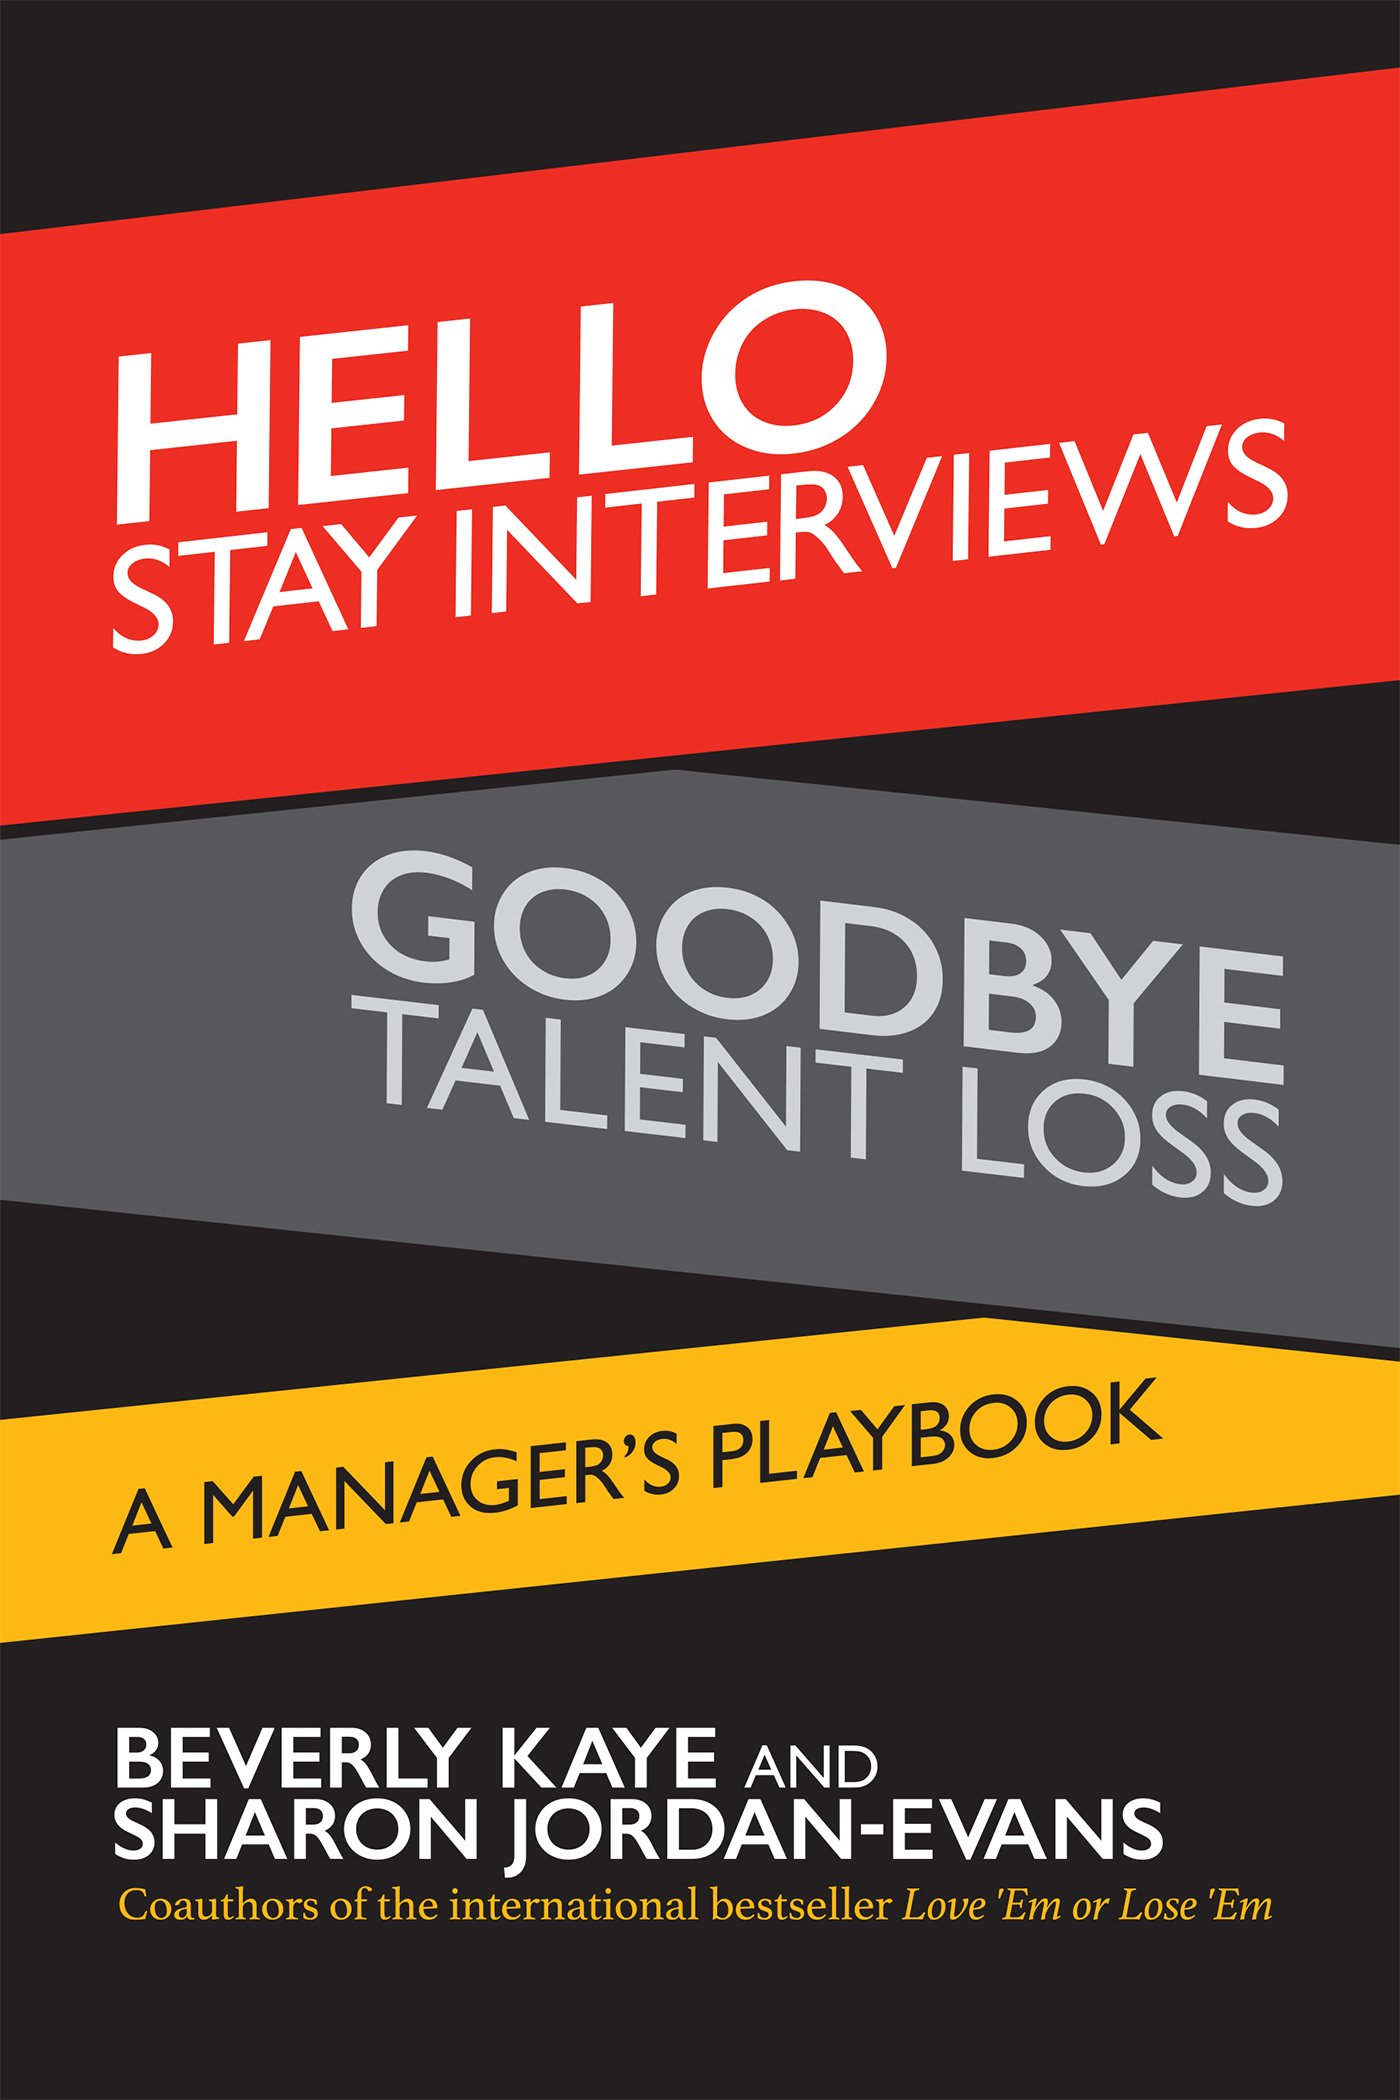 Amazon.com: Hello Stay Interviews, Goodbye Talent Loss: A Manager's  Playbook (9781626563476): Beverly Kaye, Sharon Jordan-Evans: Books